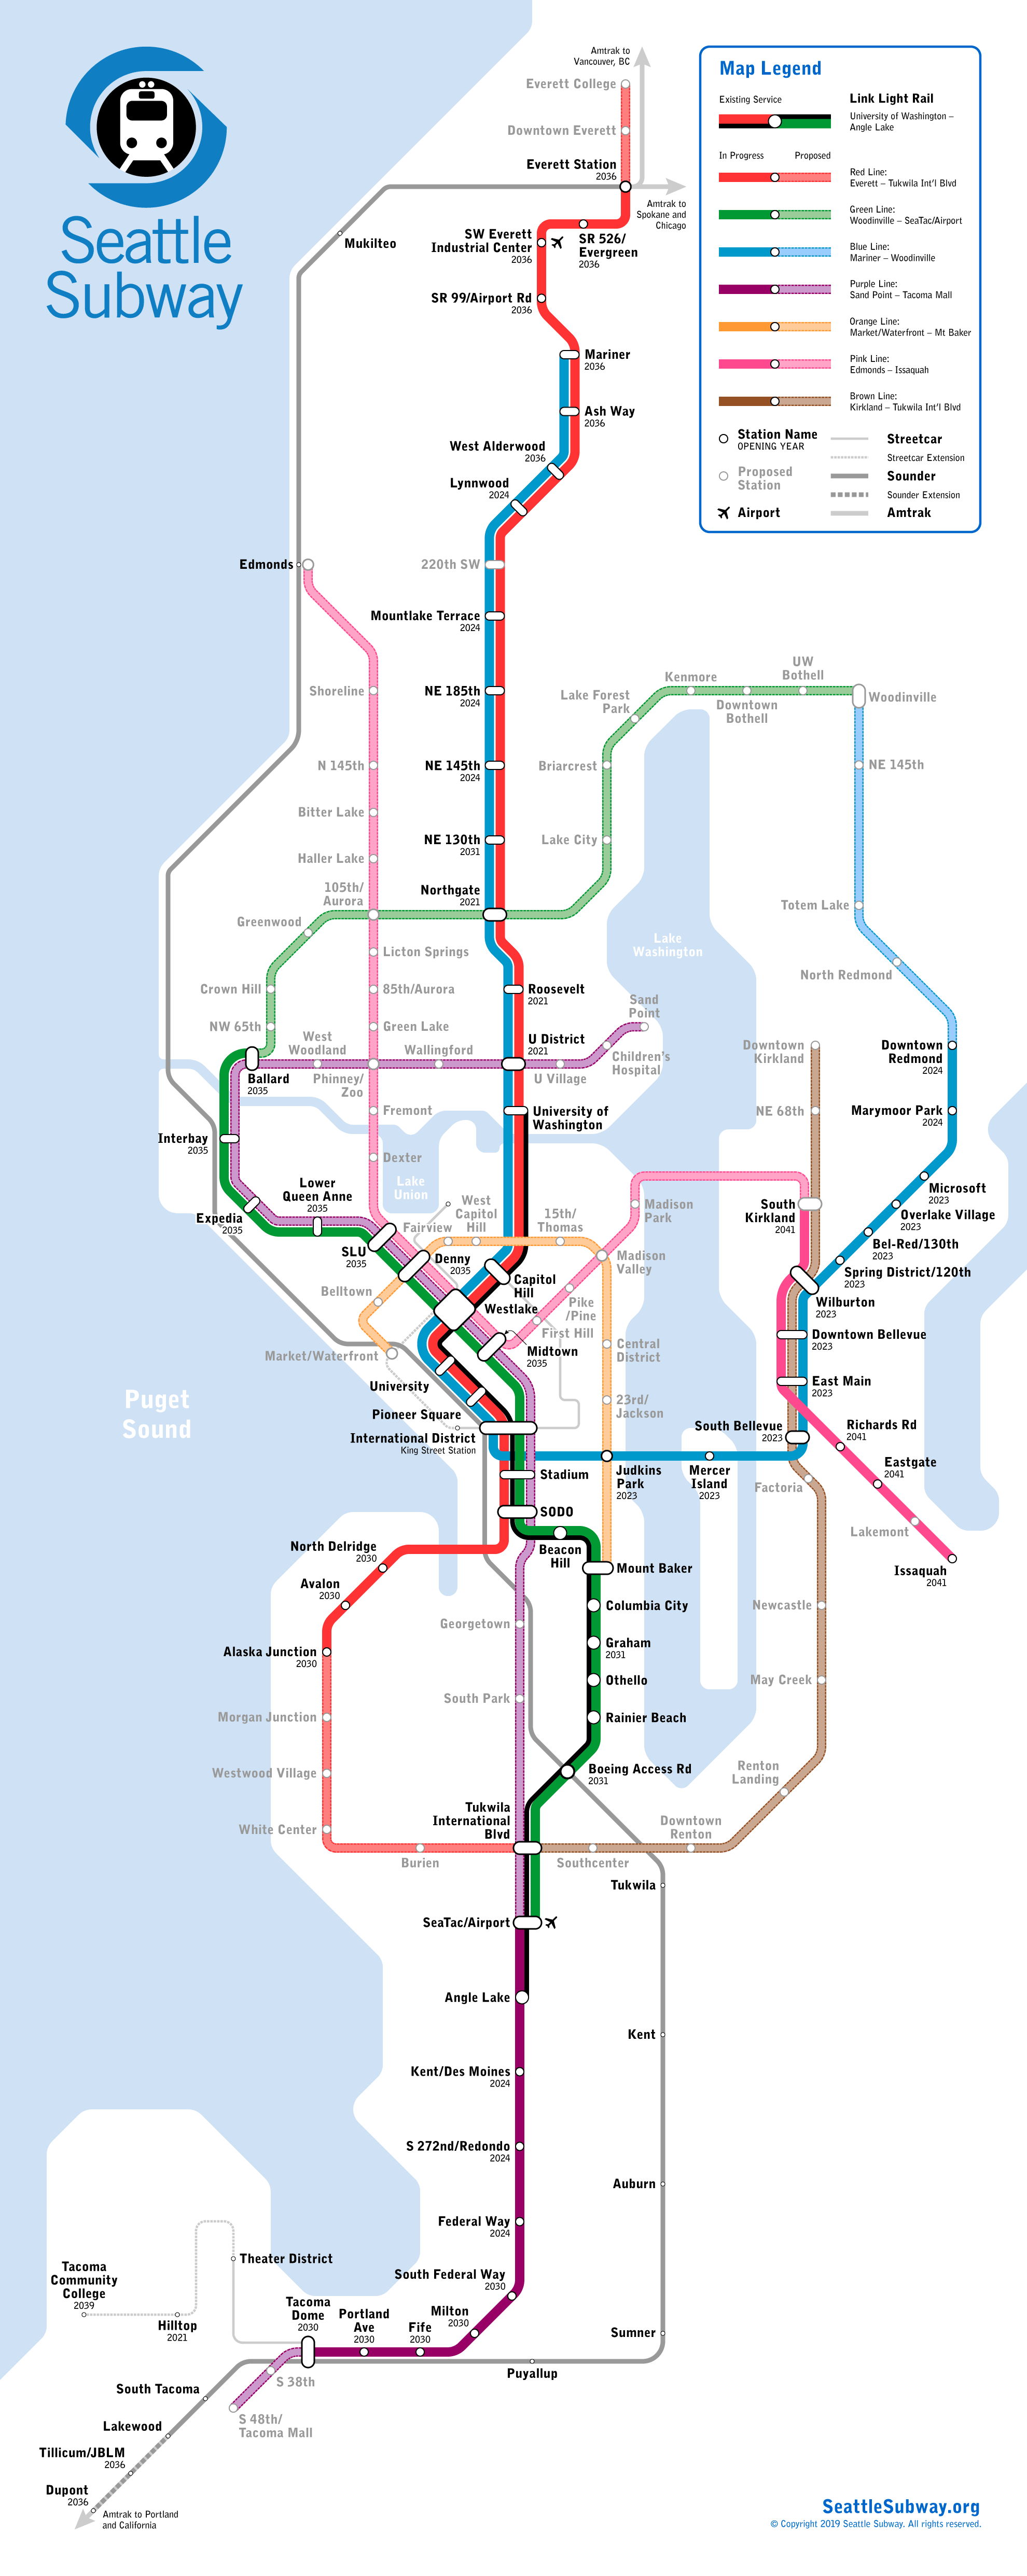 Latest Seattle Subway Vision Map Refines the Metro 8 Line ... on seatac map, seattle football stadium map, seattle attractions map, seattle time zone map, seattle landfill map, port of seattle map, seattle central map, seattle police map, seattle bar map, seattle area map, seattle airports lights rails, seattle runway map, seattle airspace map, downtown seattle map, seattle skytrain map, seattle cruise terminal map, seattle transportation system map, seattle aviation map, sea terminal map, seattle light rail map,